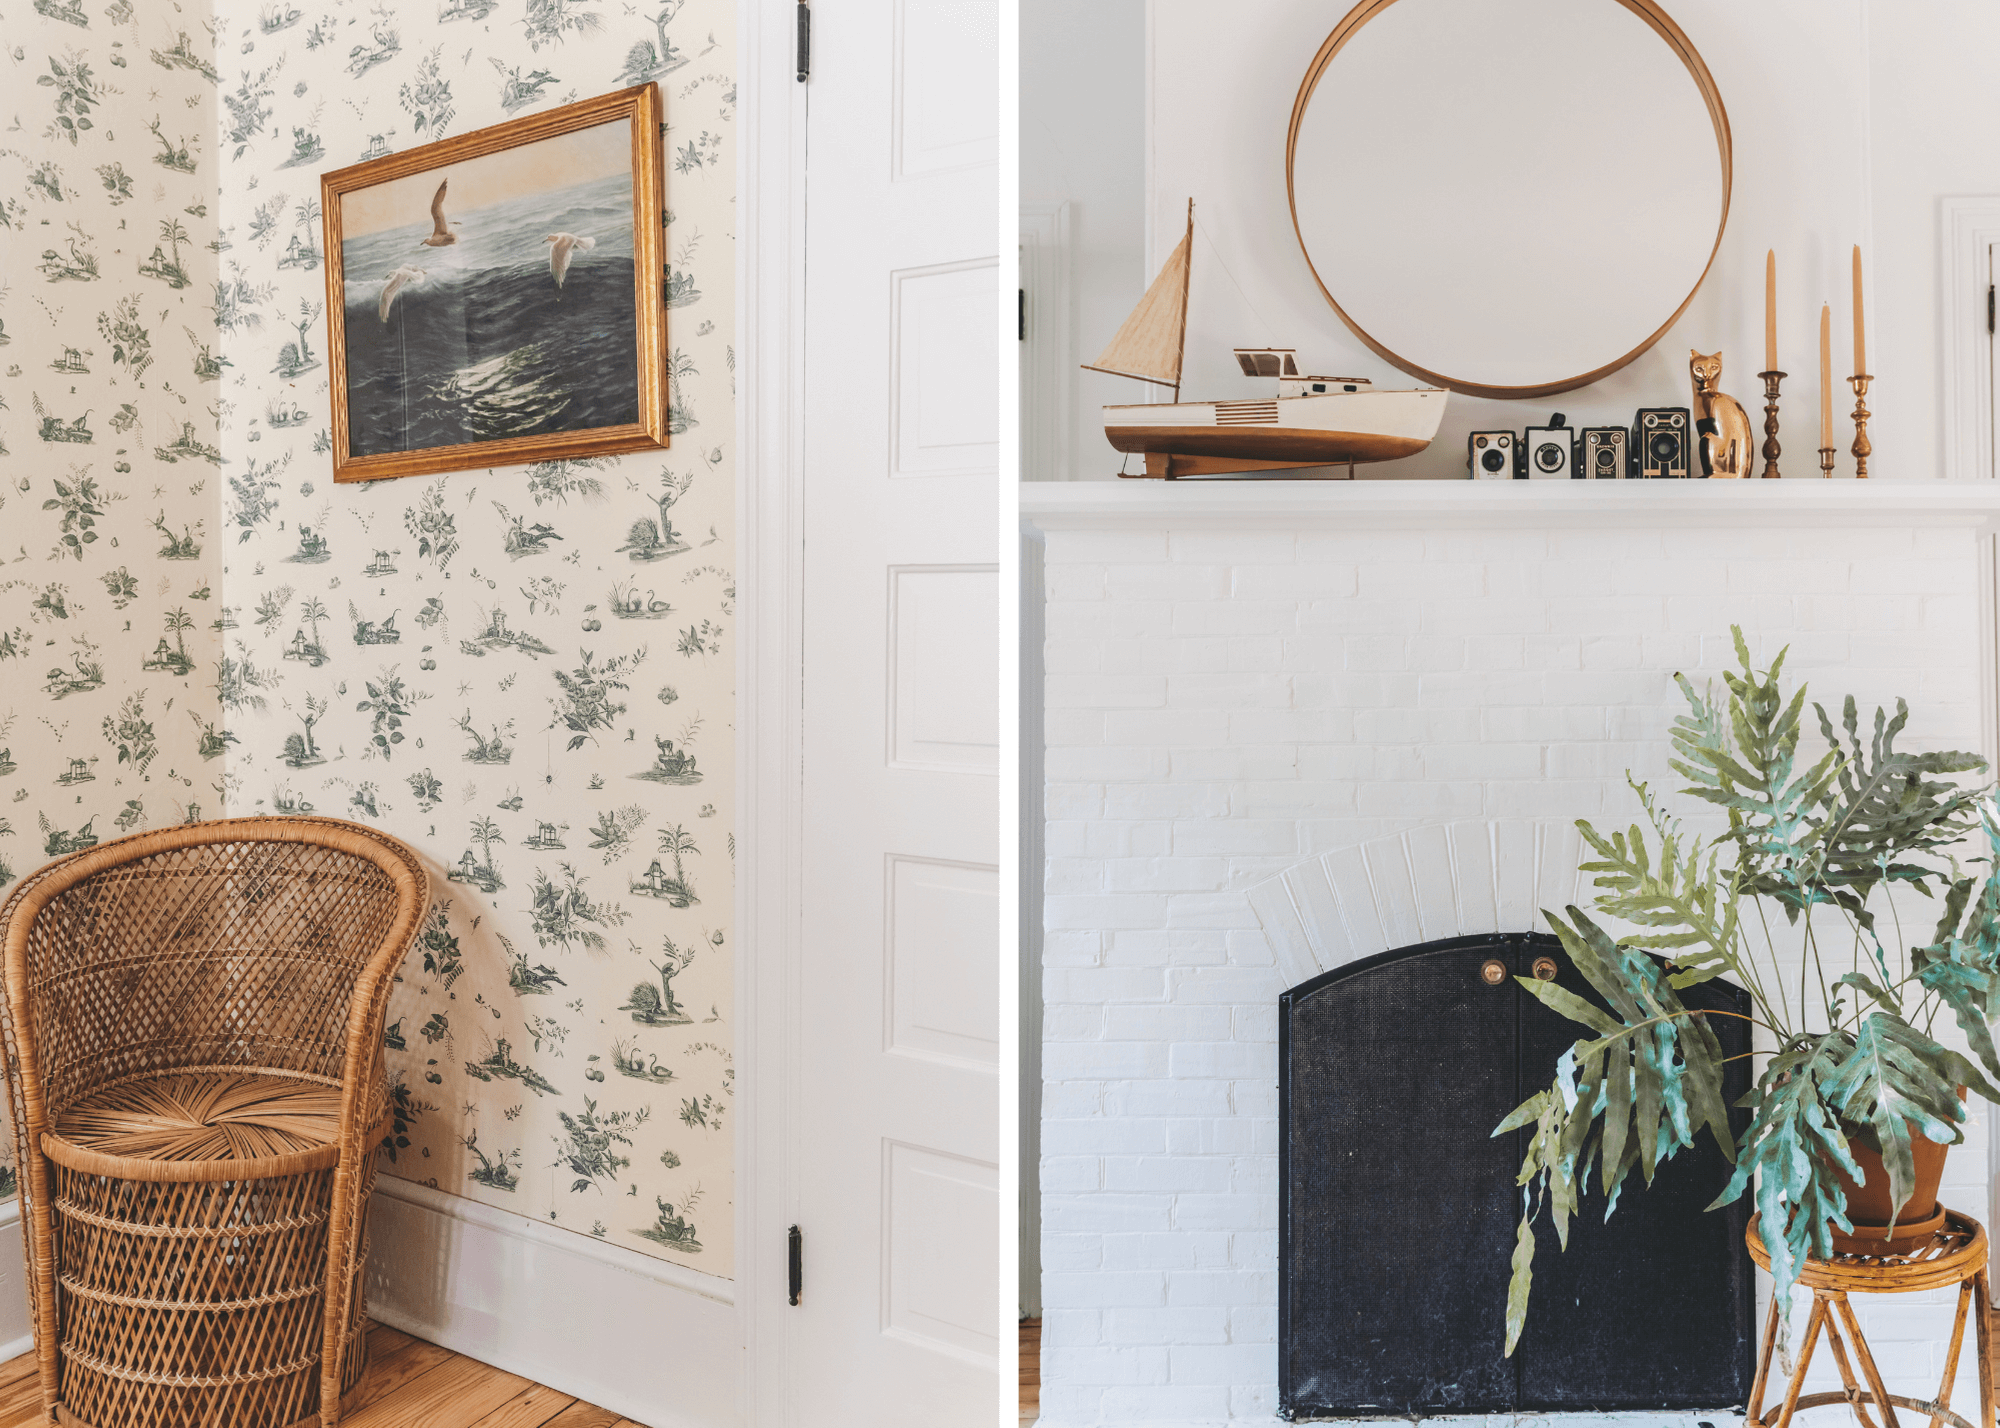 Upgrading Your Home Through Budget-Friendly Art (+ Places We Love to Shop)